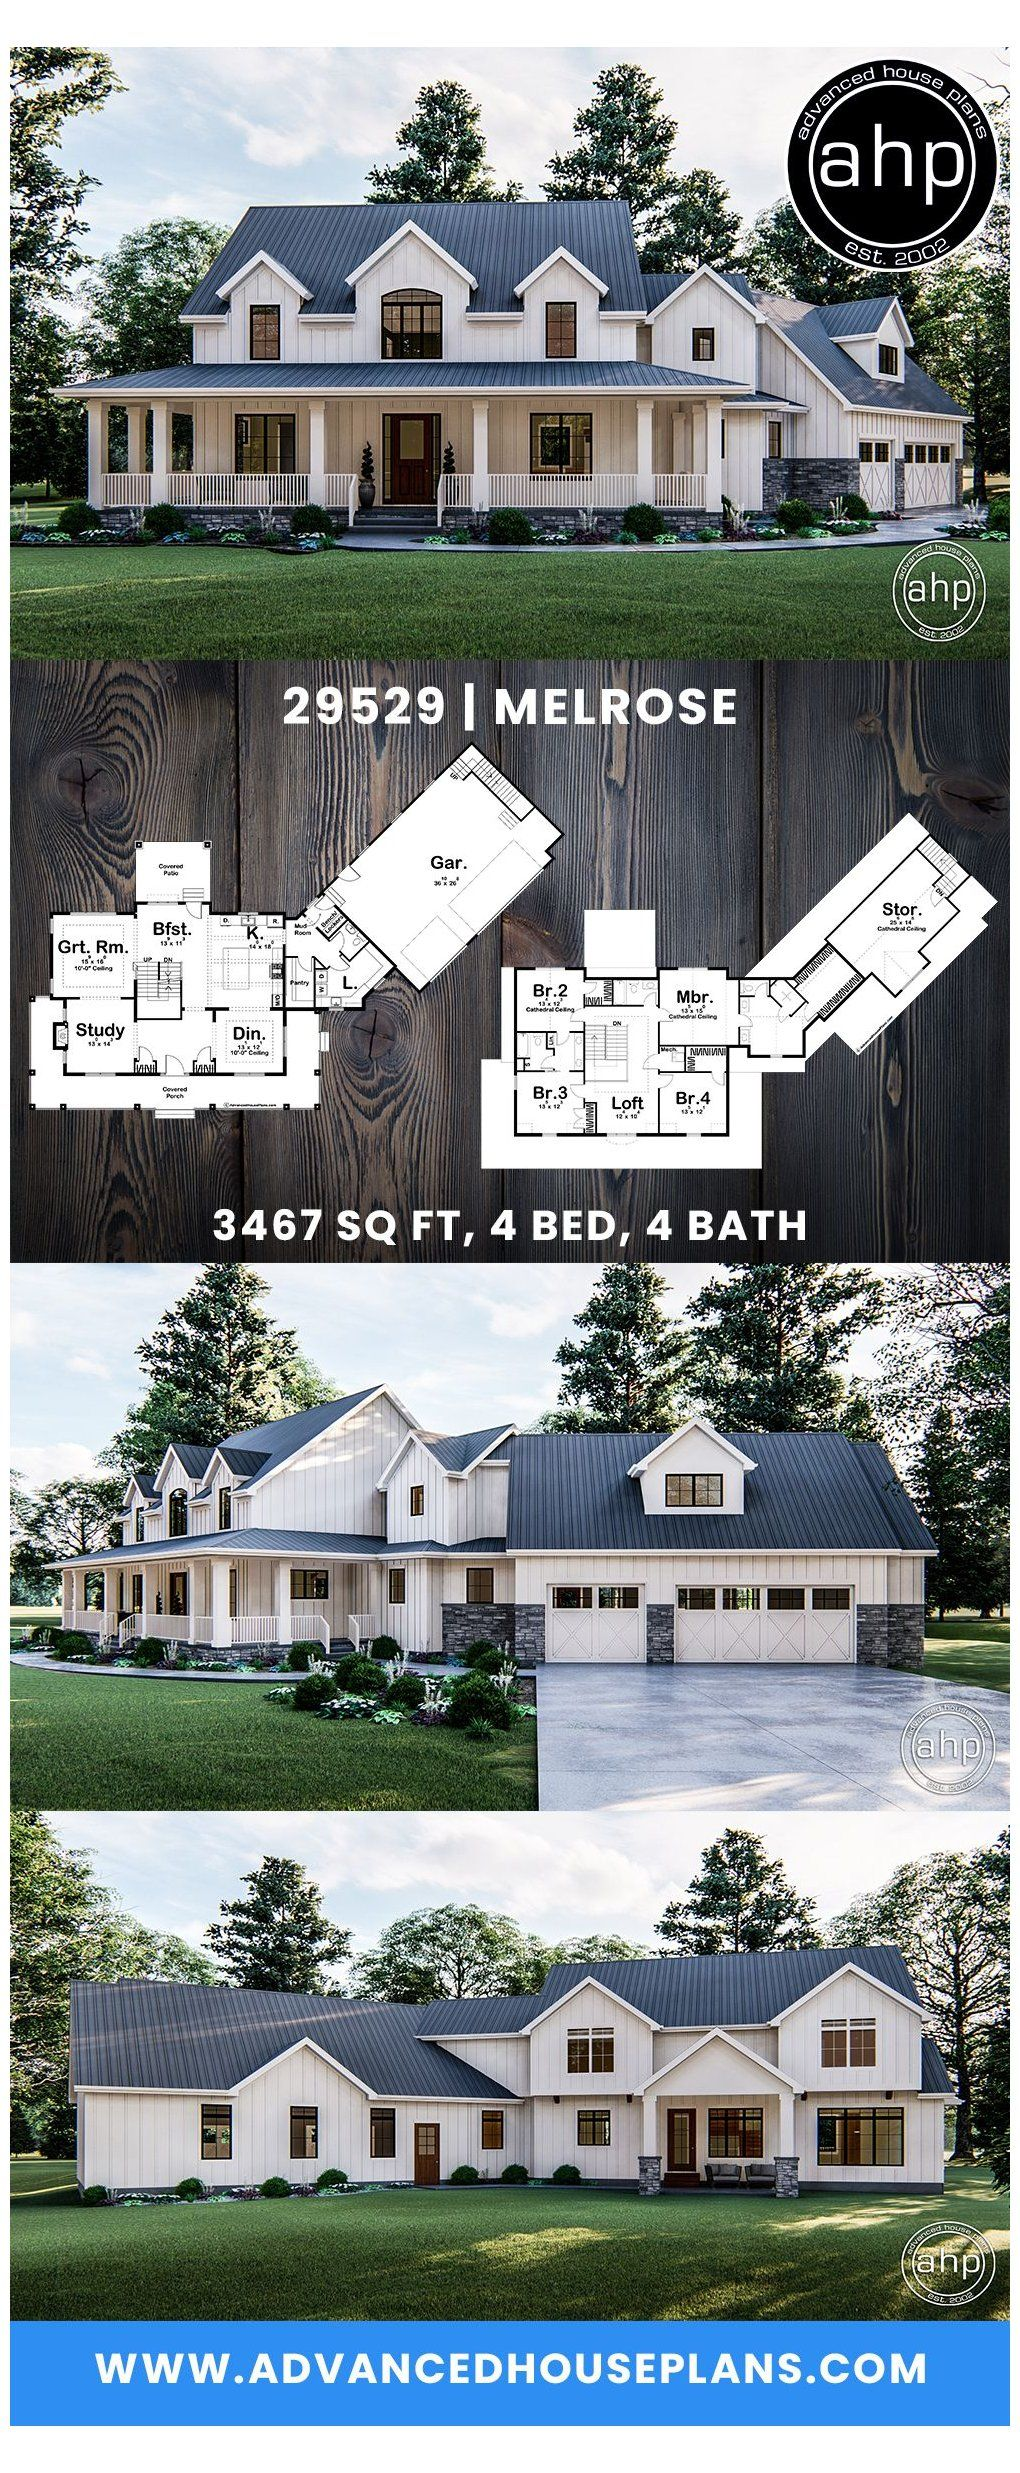 Stunning 4 Bedroom Modern Farmhouse With A Wrap Around Front Porch The House We Can Agree Upon In 2020 House Plans Farmhouse Modern Farmhouse Plans Farmhouse House